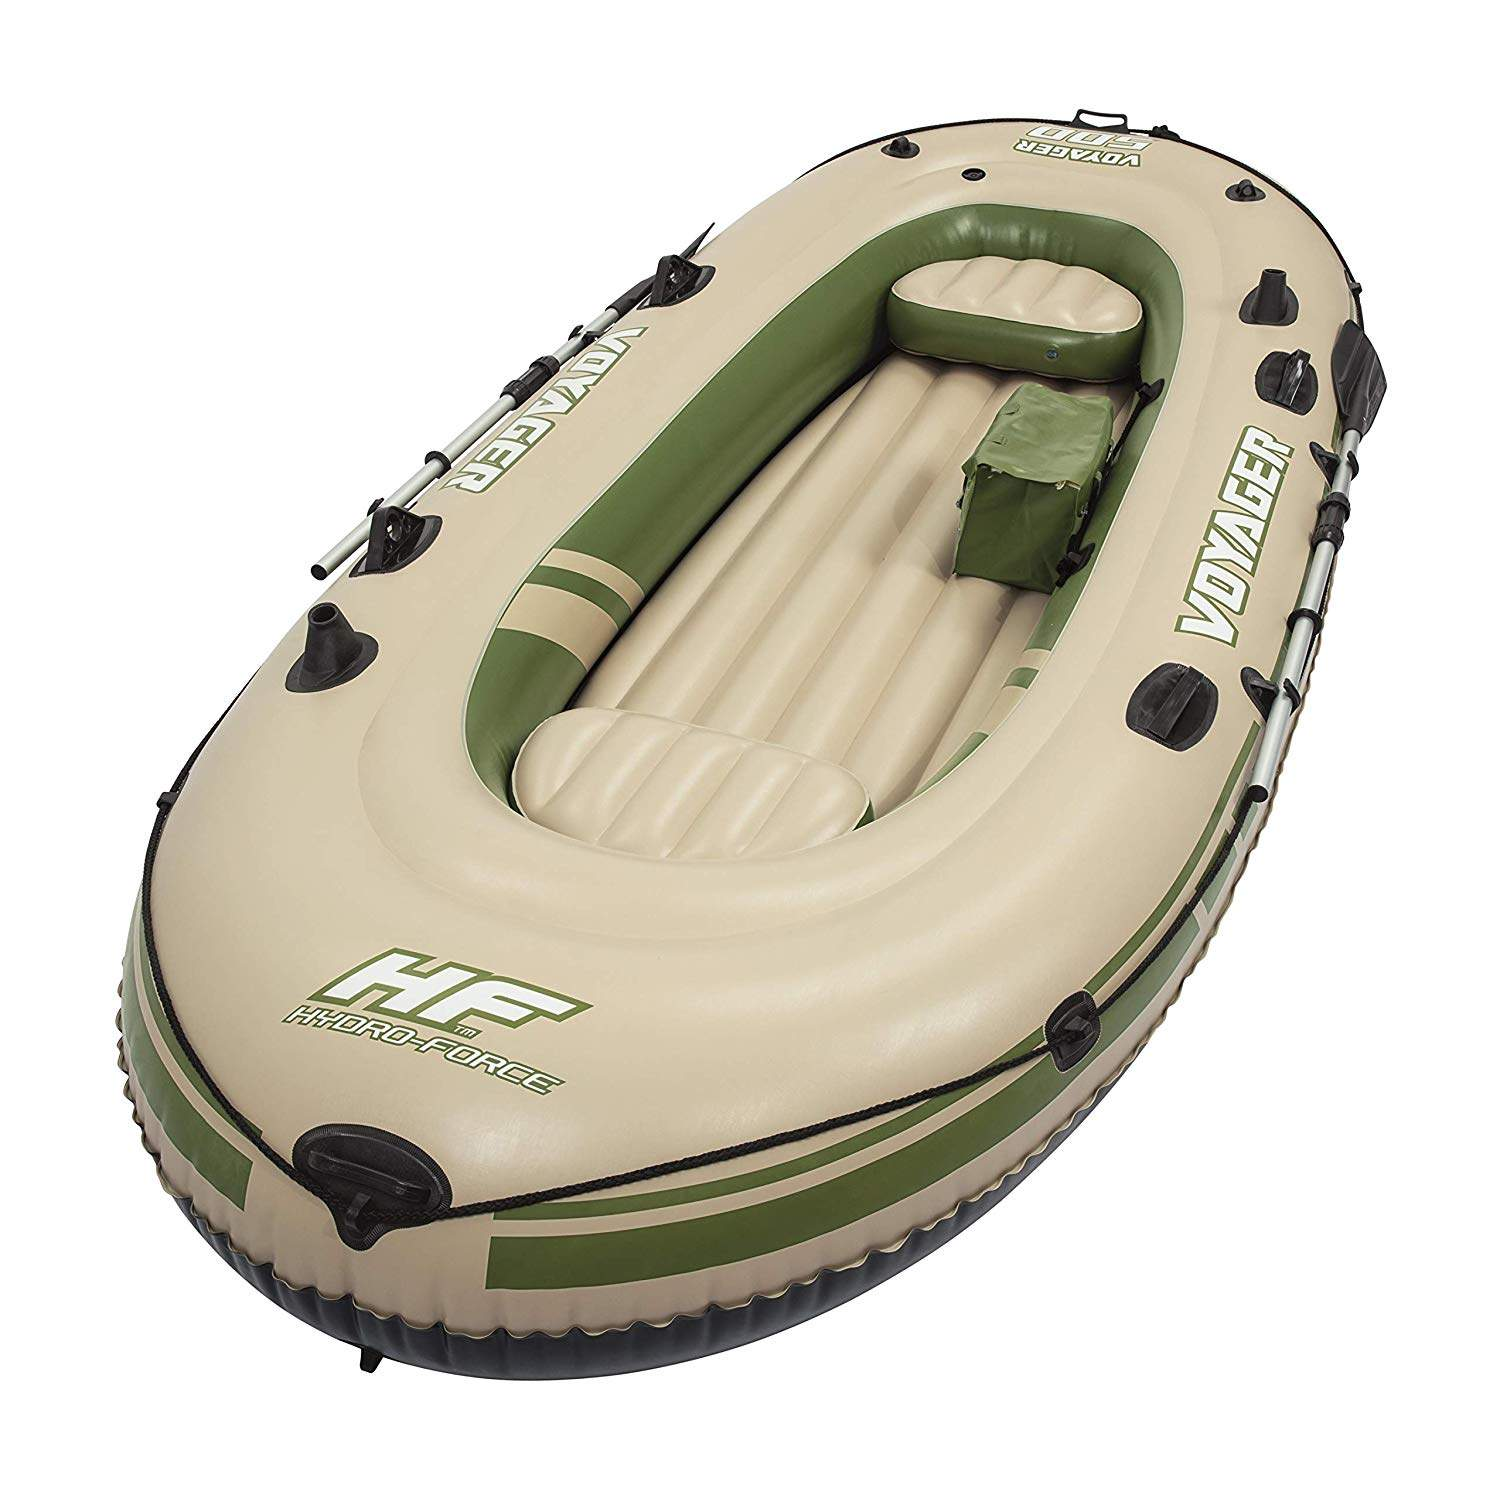 Bestway  Voyager 500 Hydro-Force Inflatable 3-Person Dinghy